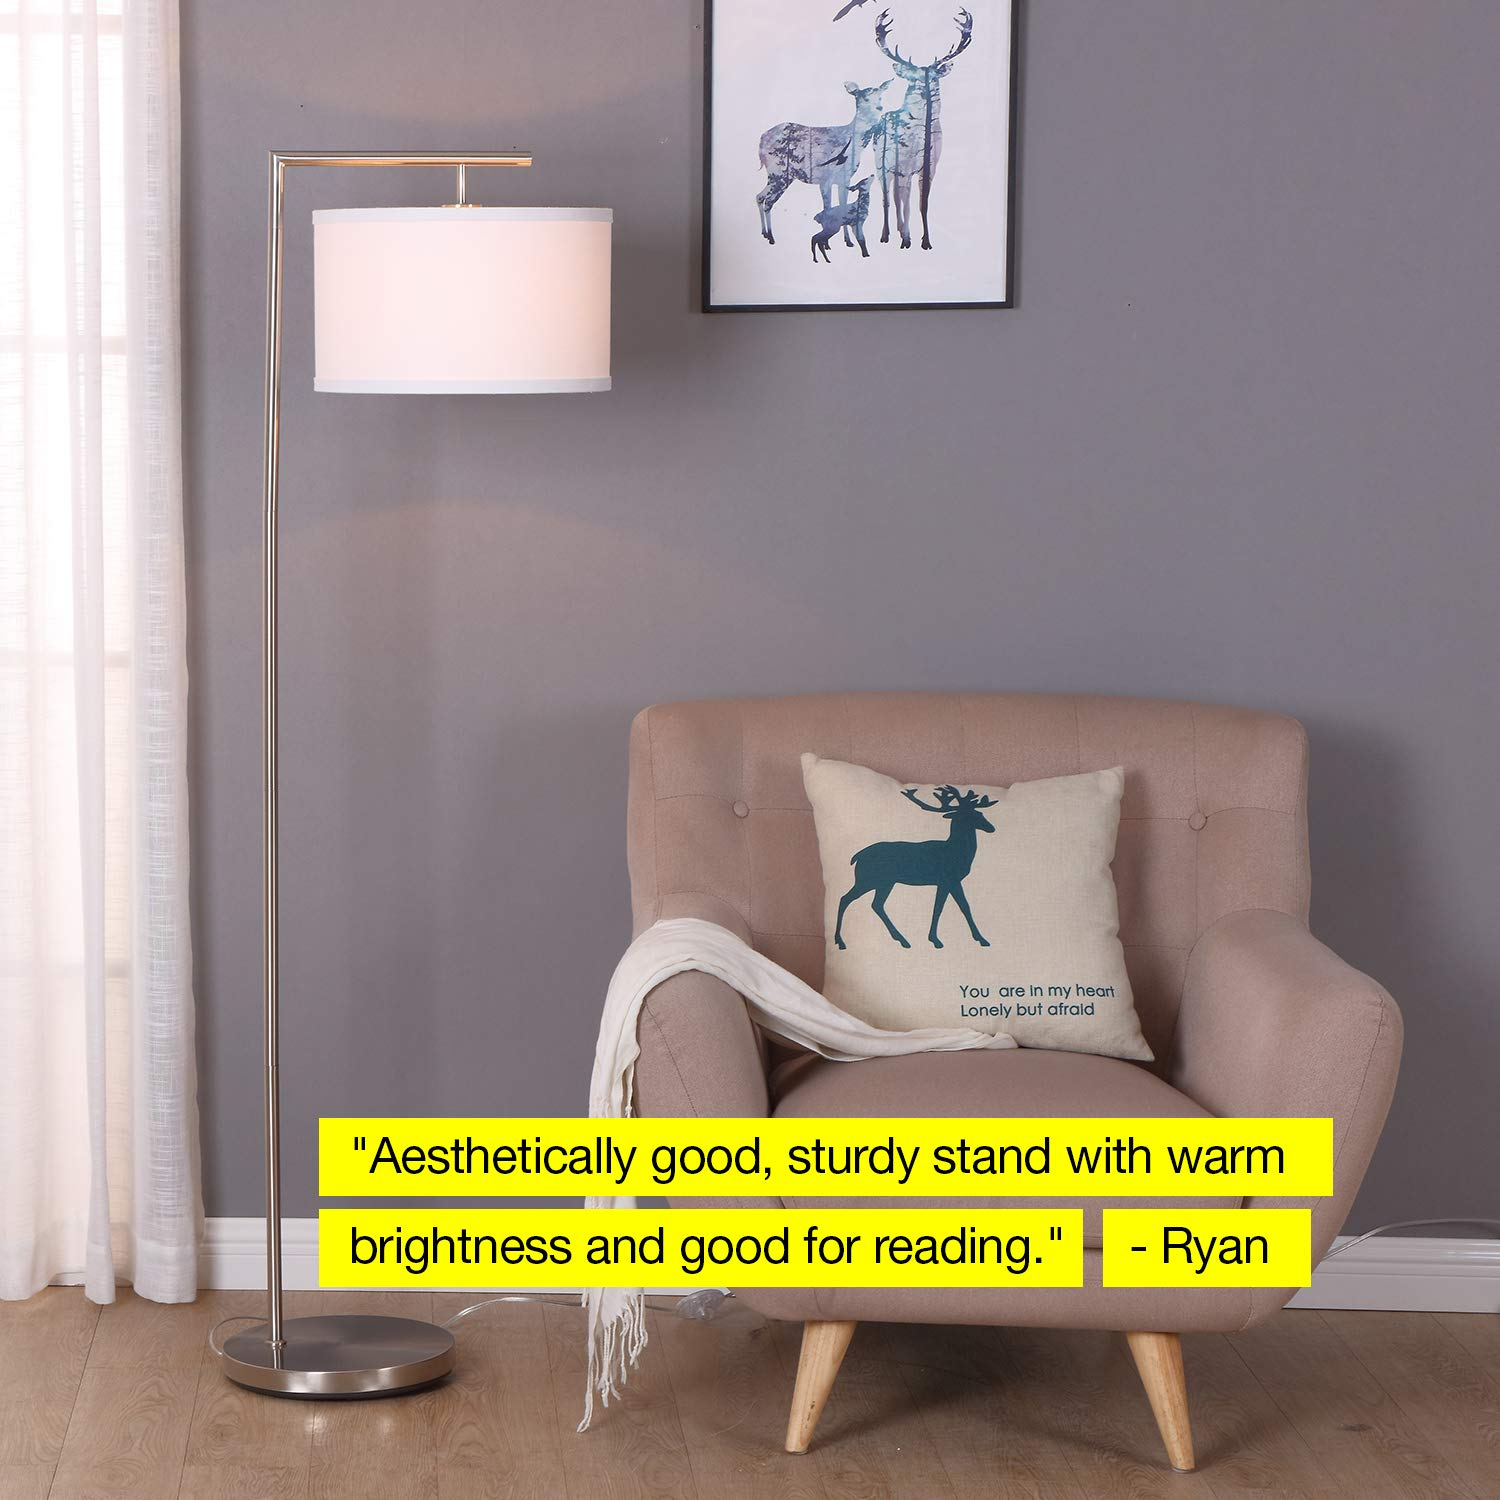 Brightech Montage Modern - LED Floor Lamp for Living Room- Standing Accent Light for Bedrooms, Office - Tall Pole Lamp with Hanging Drum Shade - Satin Nickel by Brightech (Image #7)